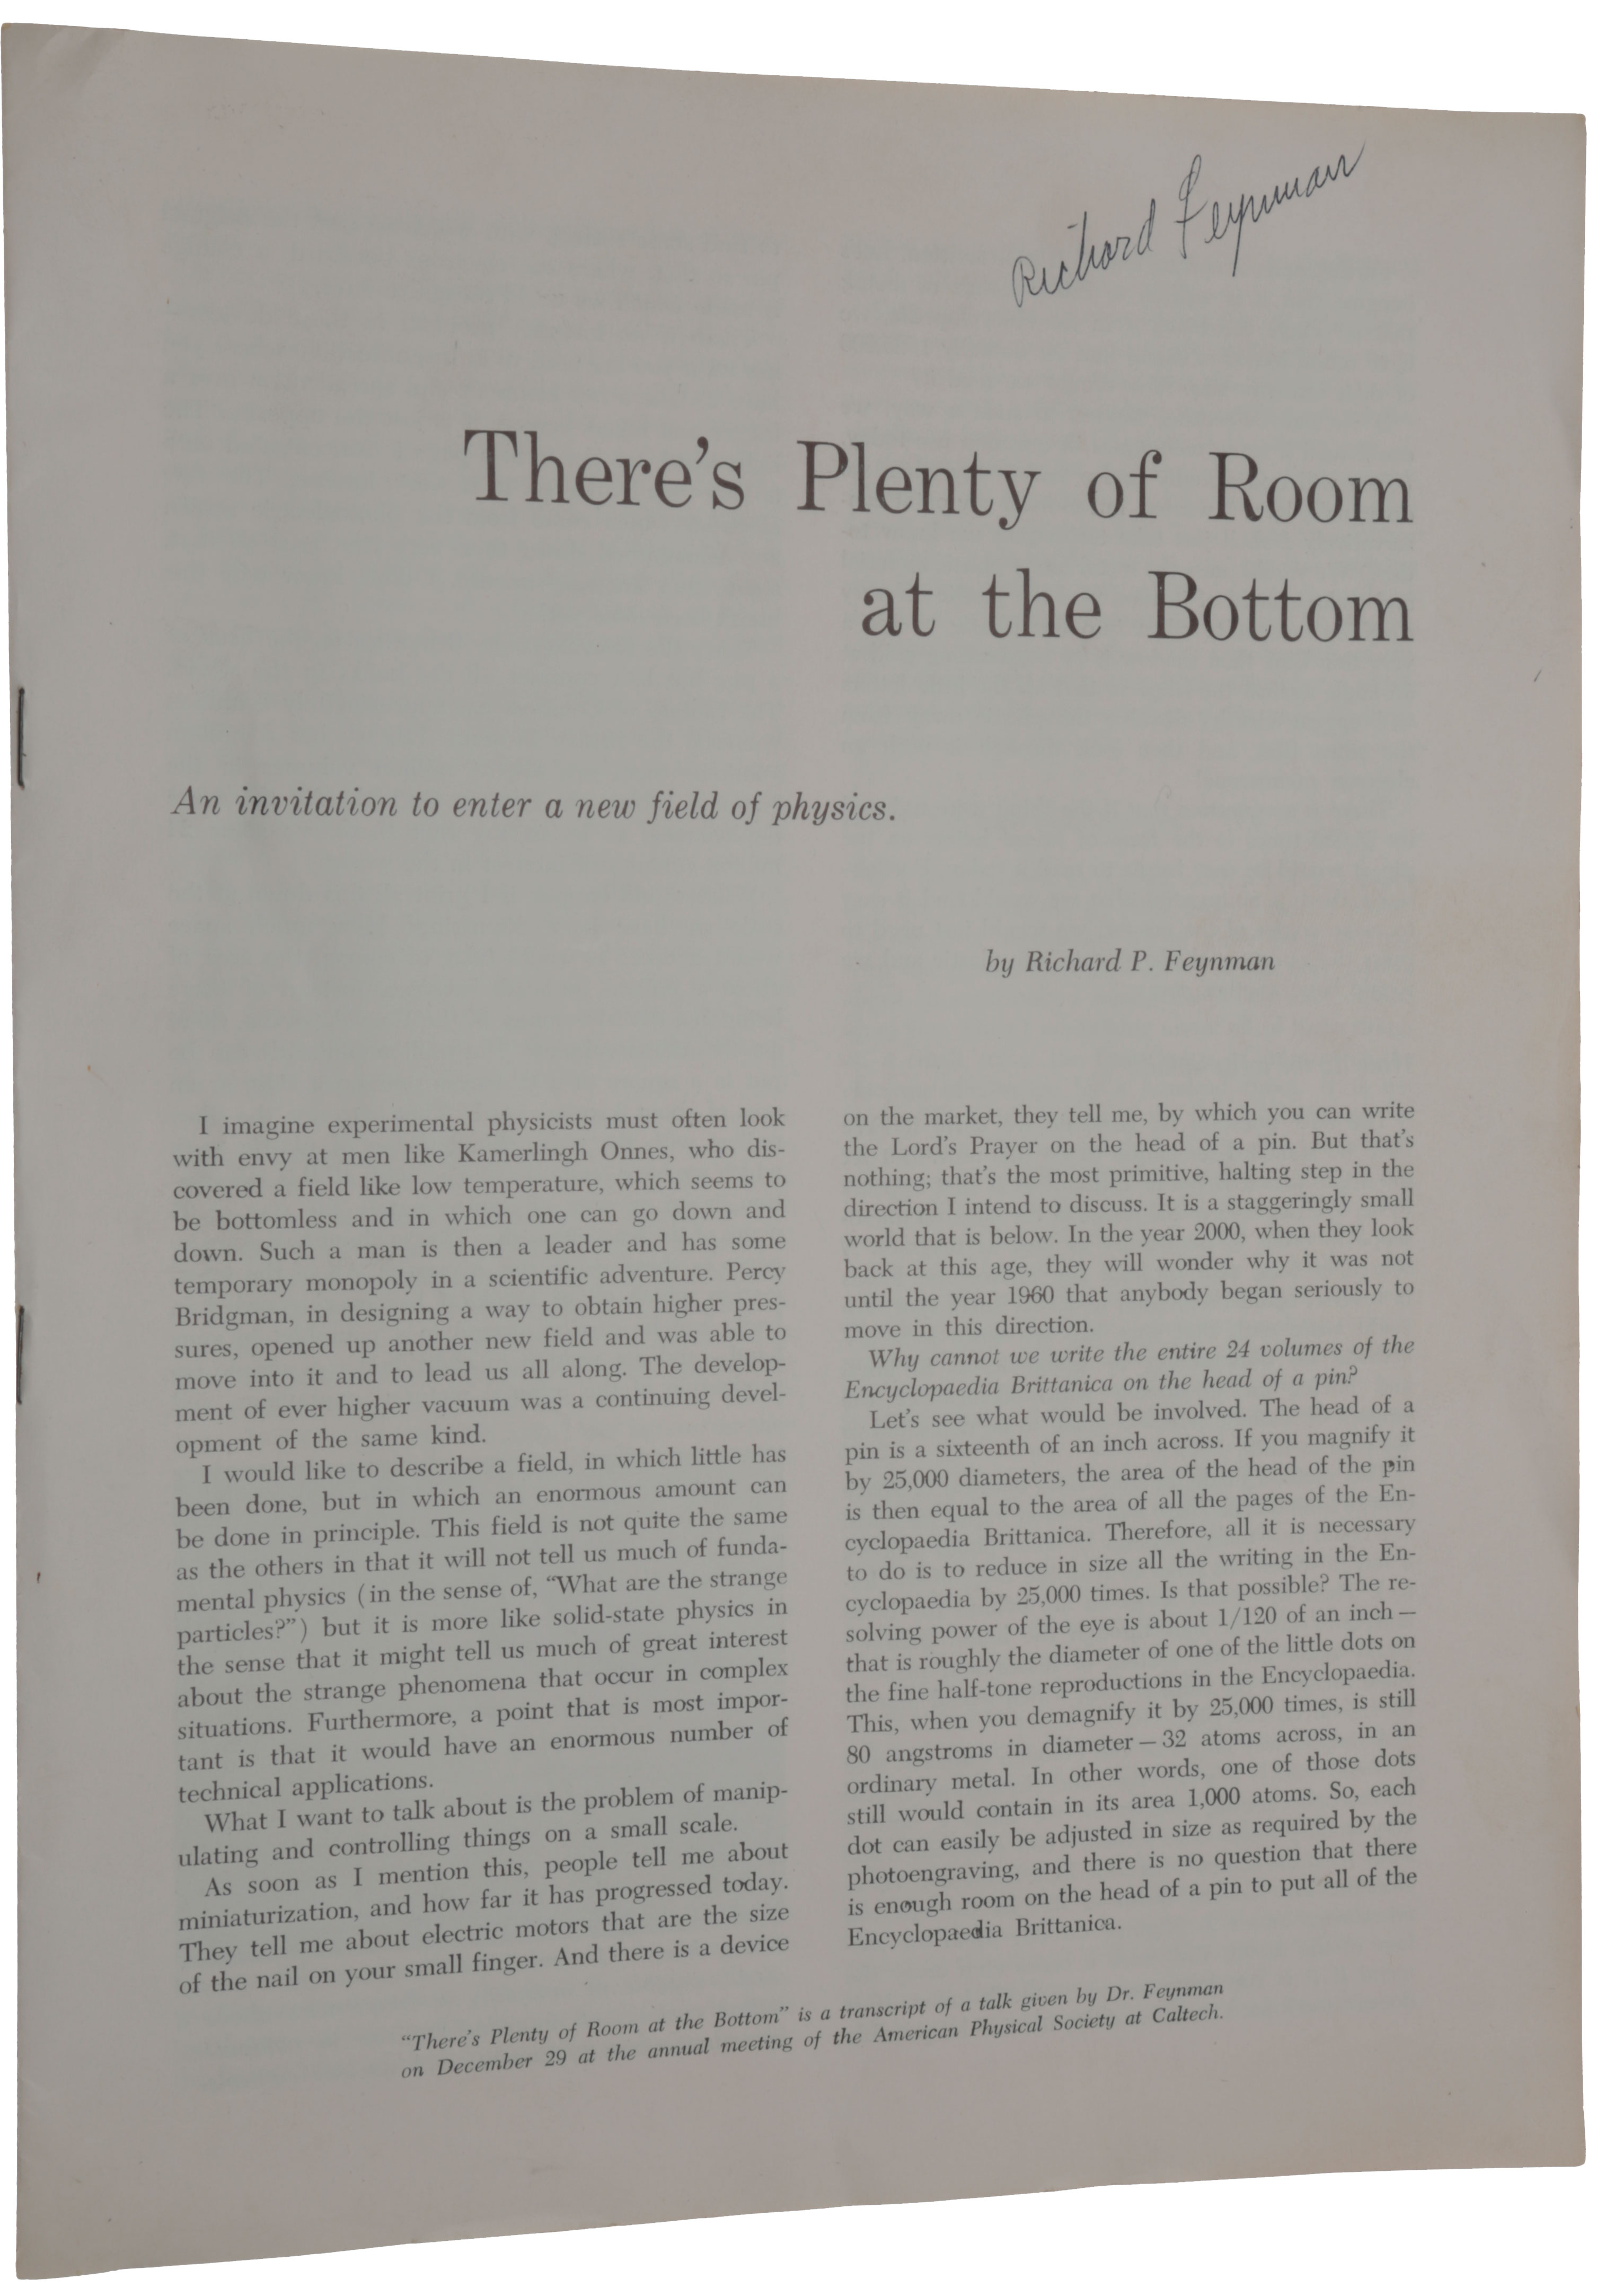 There's Plenty of Room at the Bottom. An invitation to enter a new field of physics. Offprint from: Engineering and Science Magazine, February 1960. Richard Phillips FEYNMAN.